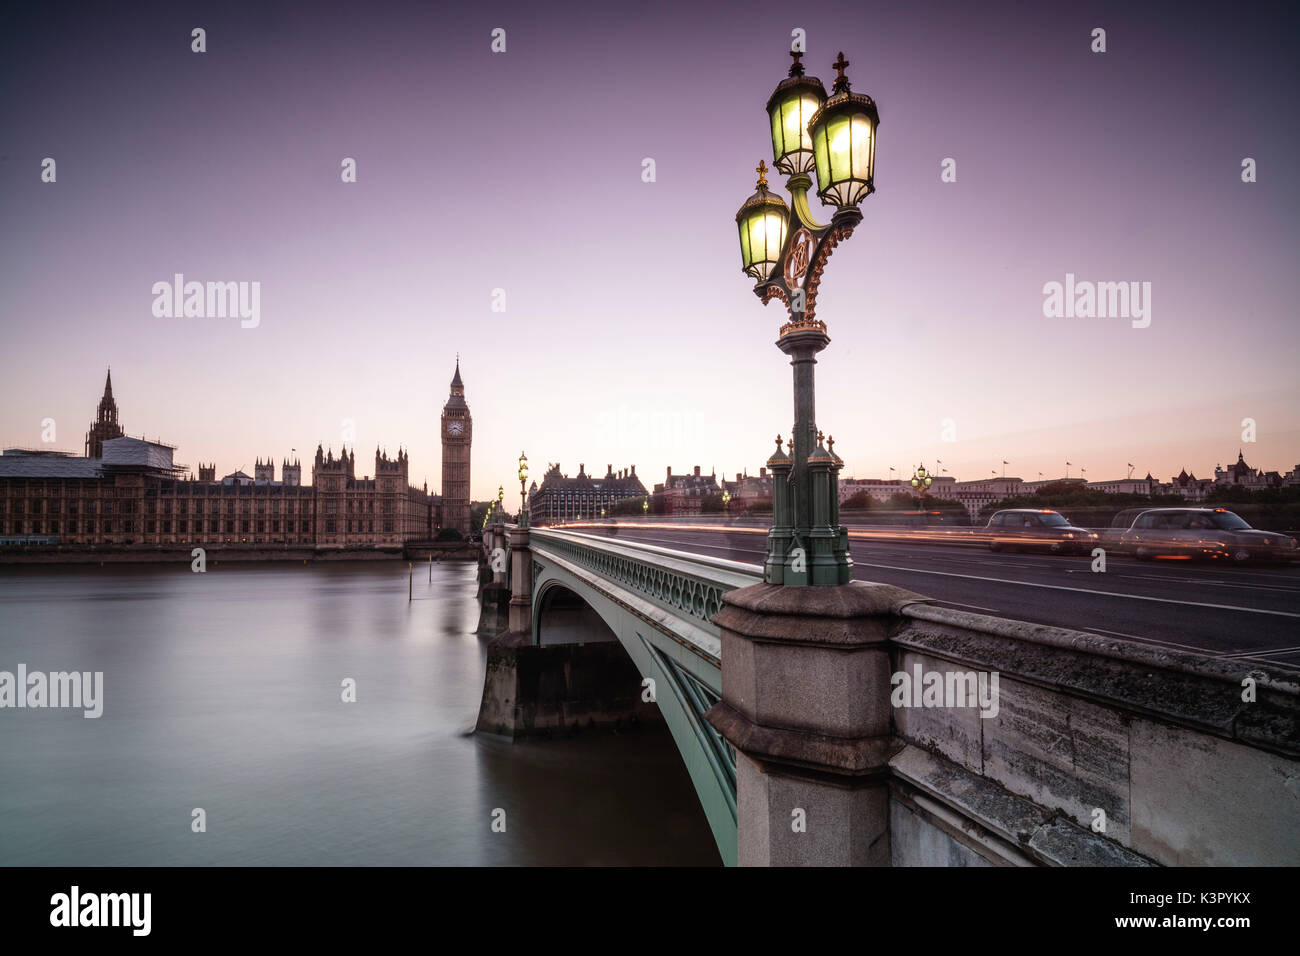 Vecchia strada lampada telai Westminster Bridge con il Big Ben e Westminster Palace in background London Regno Unito Immagini Stock